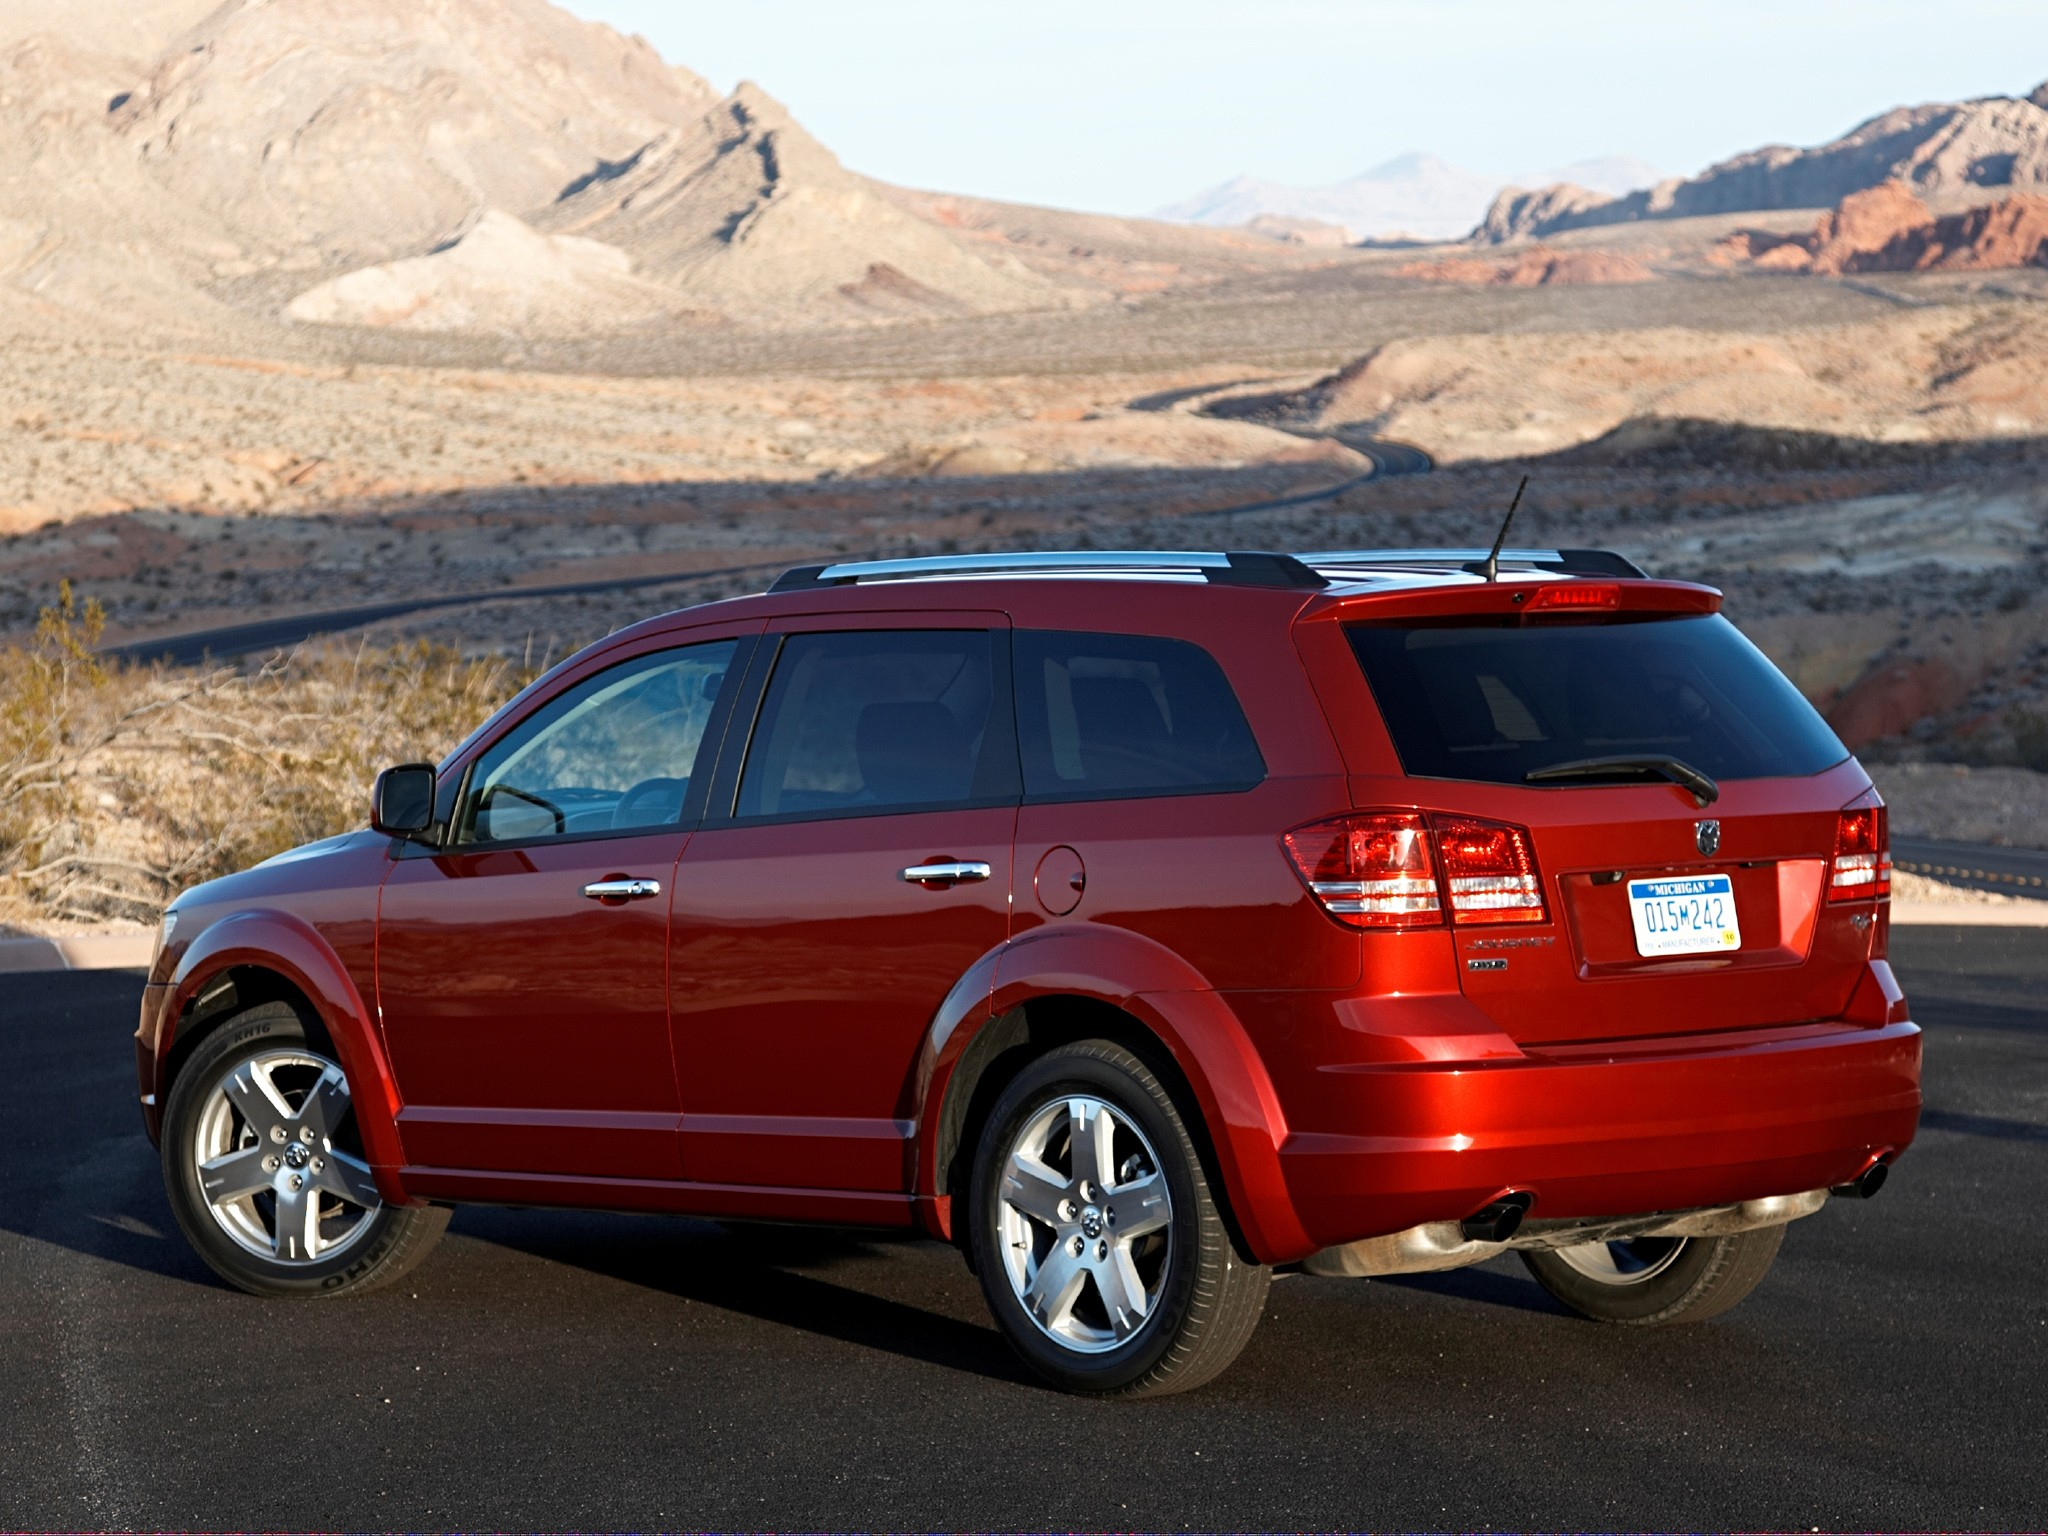 acura wagon html with Dodge Journey 2008 on Rockauto Parts Catalog further Toyota Corolla 3 Doors 1992 moreover Oasis Cruise Oasis Of The Seas Royal Caribbean as well Doa Home together with Toyota Camry 2001.